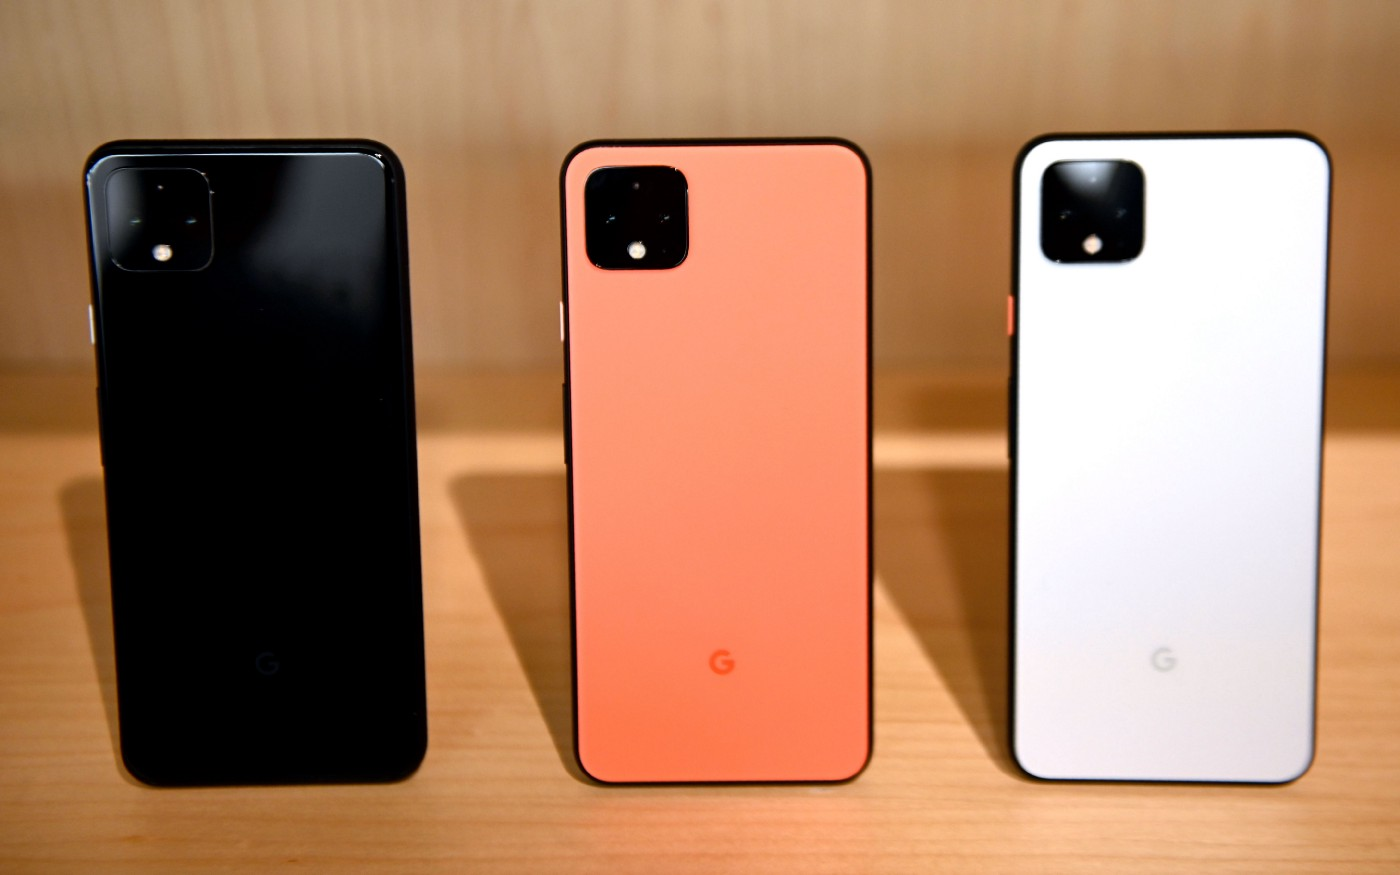 The new Google Pixel 4 phone is on display during a Google product launch event called Made by Google 19 on October 15, 2019